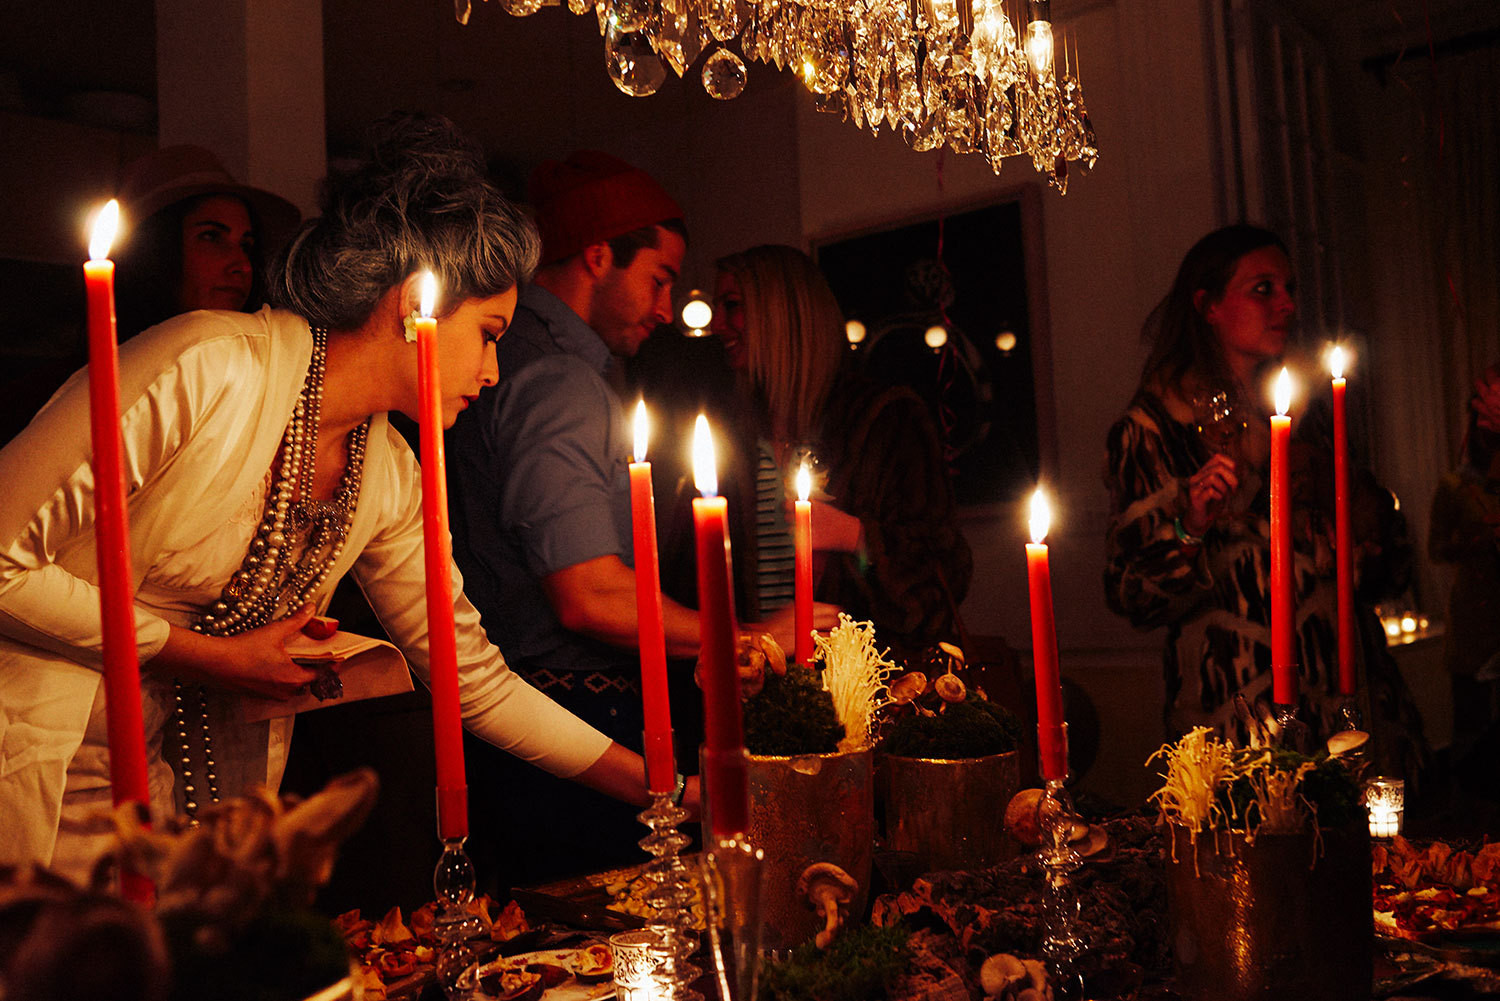 Costumed partygoers nibble on hors d'oeuvres arranged on a table lit by Creative Candles' towering tapers.